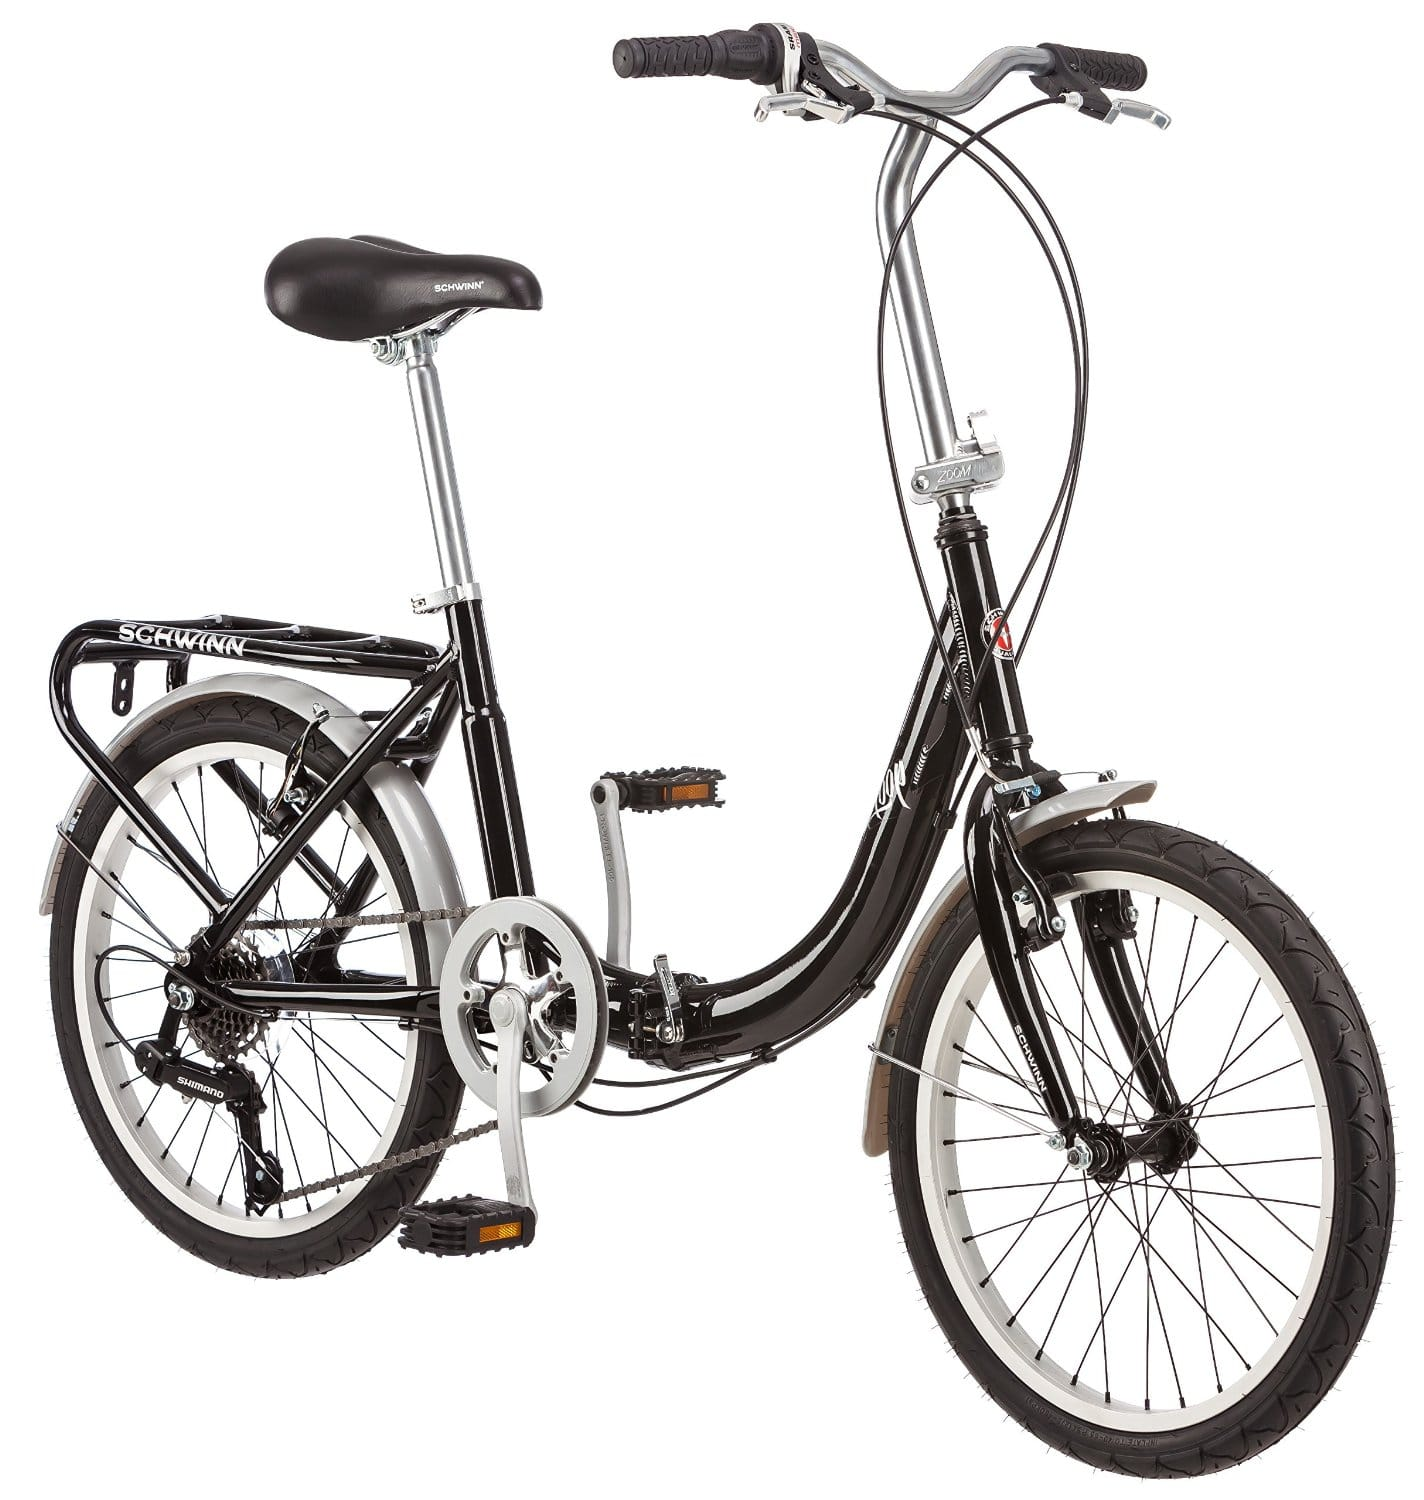 Top 10 Best Folding Bikes In 2019 Reviews